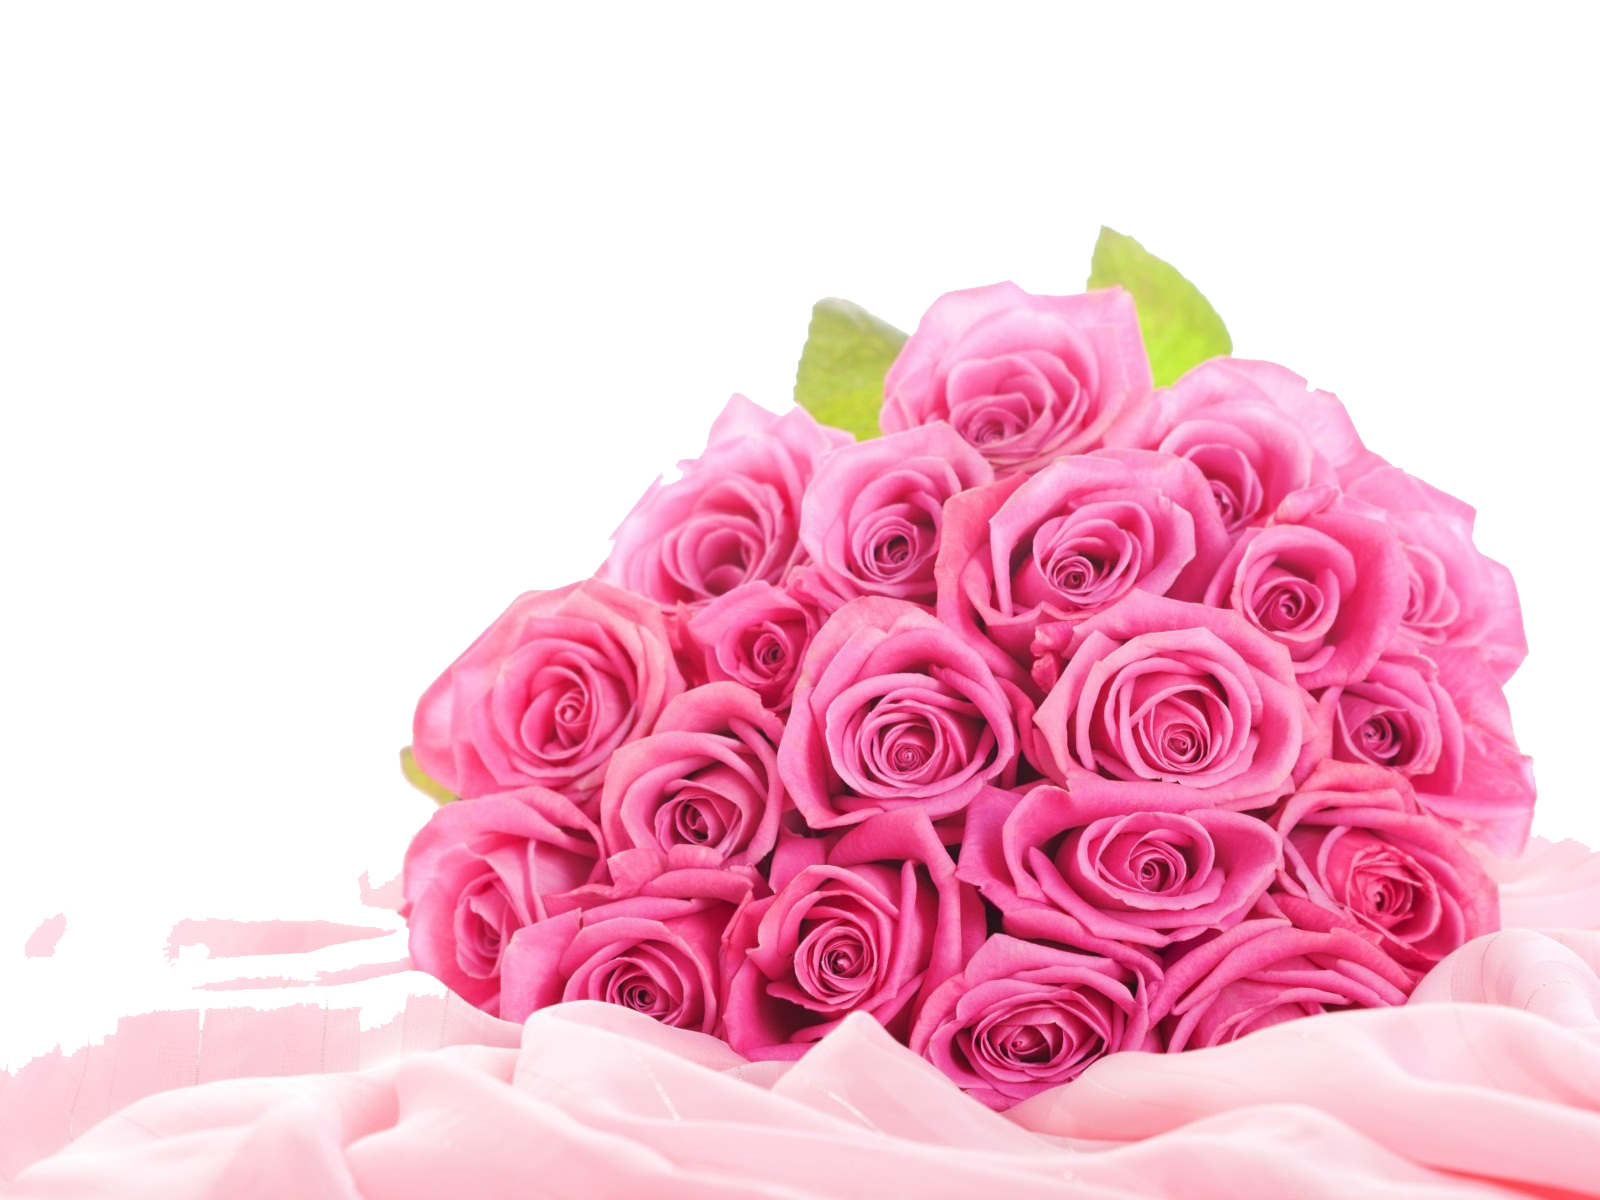 Download pink roses flowers bouquet clipart hq png image freepngimg pink roses flowers bouquet clipart png image mightylinksfo Image collections